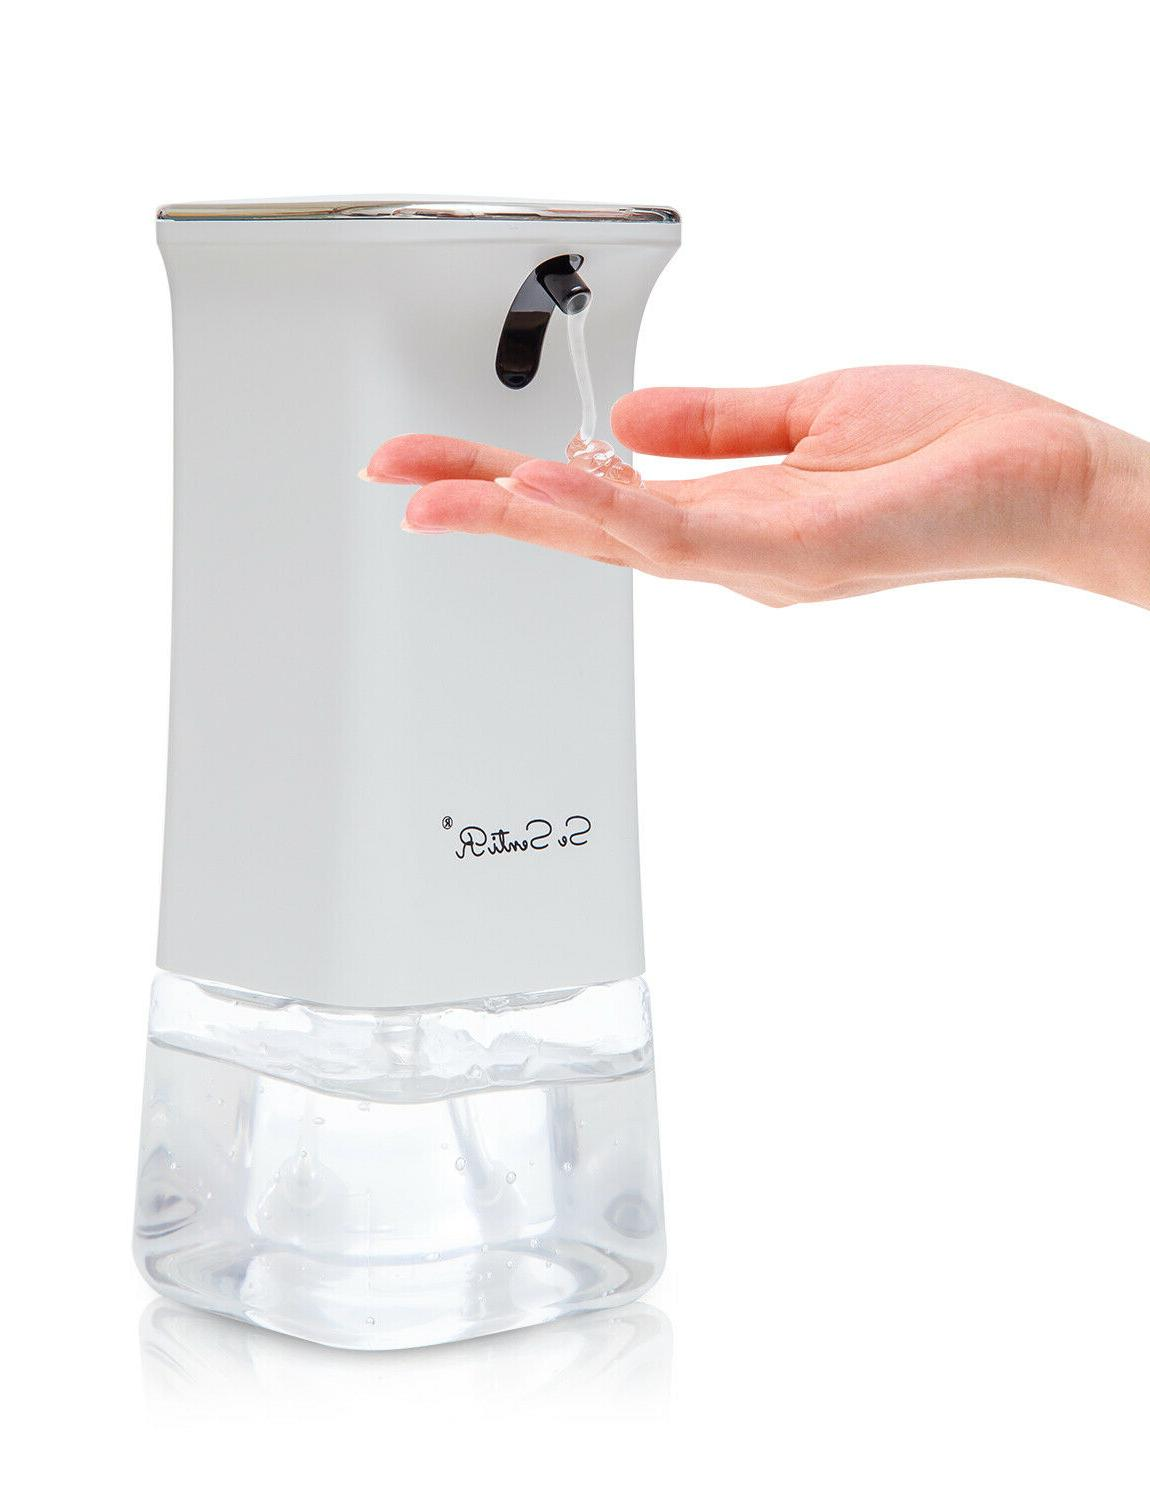 Automatic Dispenser Sanitizer Hands CounterTop - Touchless